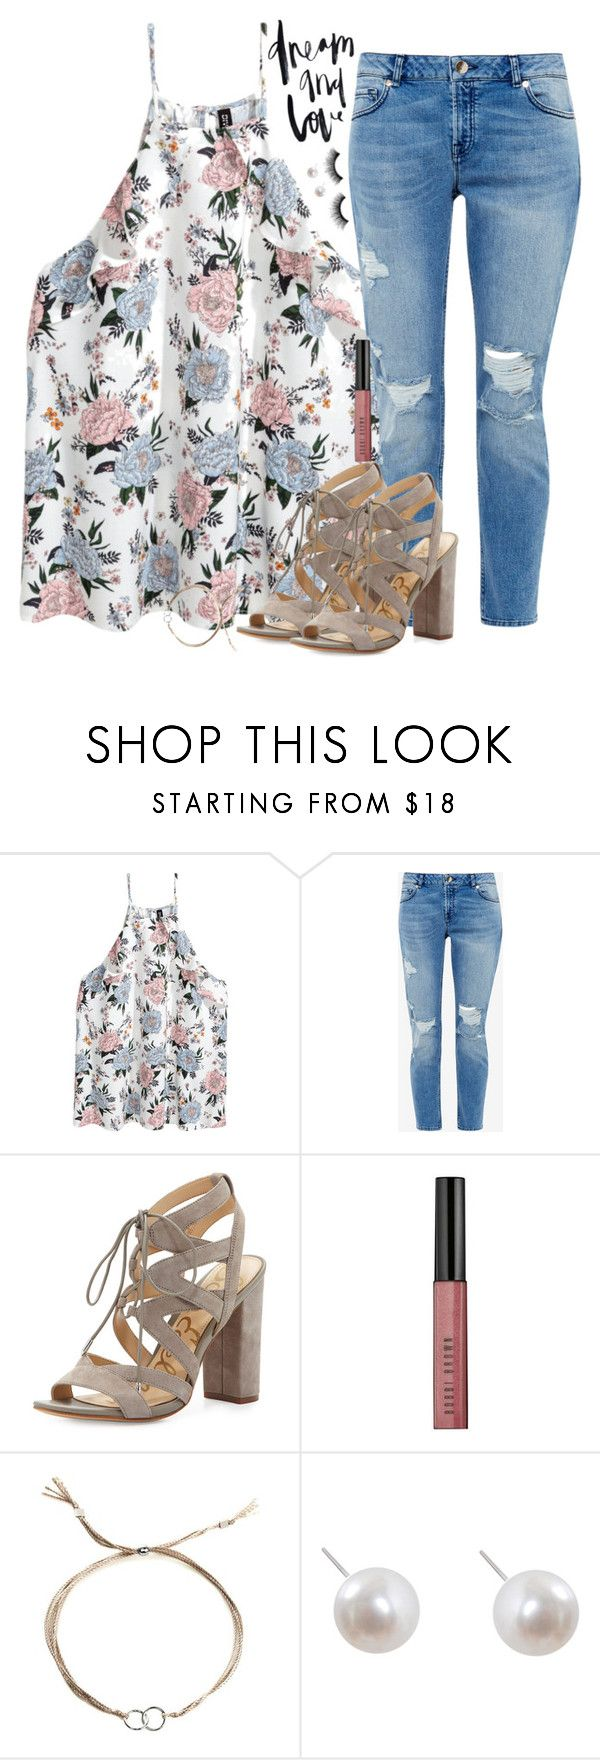 """Yeah I want summa"" by southernstruttin ❤ liked on Polyvore featuring Ted Baker, Sam Edelman, Bobbi Brown Cosmetics, Dogeared, Humble Chic and Urban Decay"